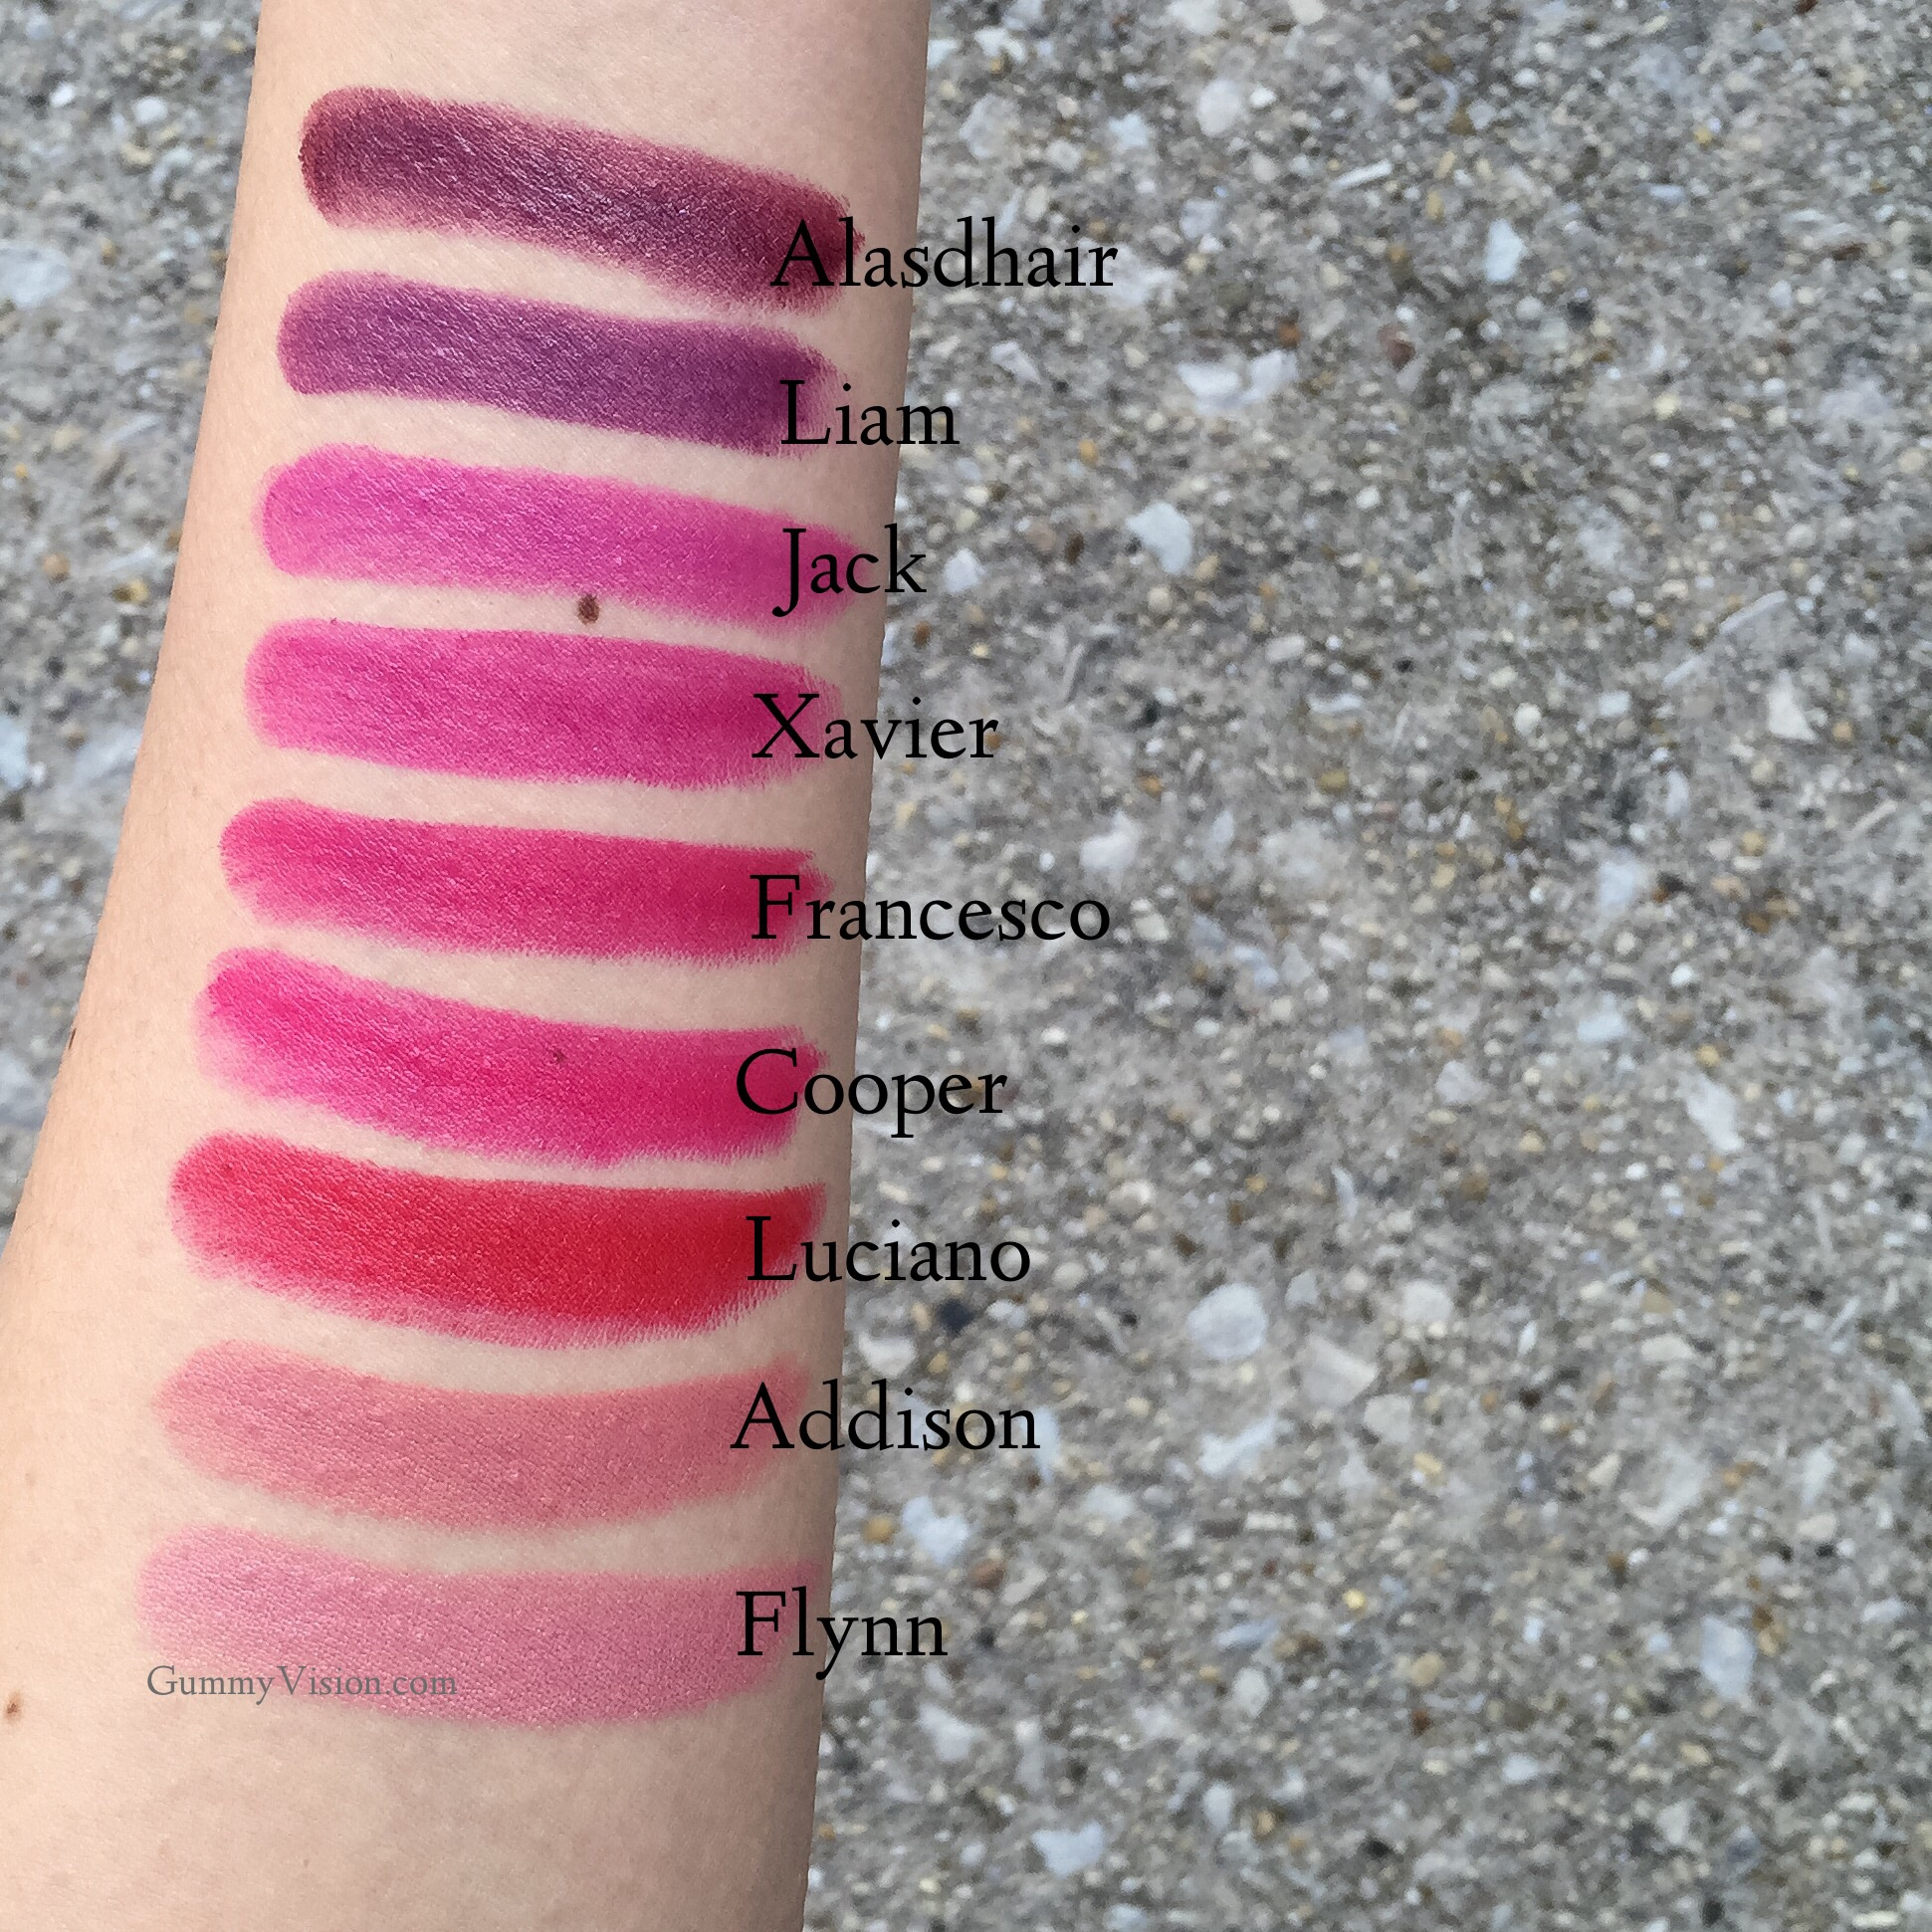 Outdoor Winter shade swatches:  Tom Ford Lips & Boys in Flynn, Addison, Luciano, Cooper, Francesco, Xavier, Jack, Liam, Alasdhair - www.gummyvision.com